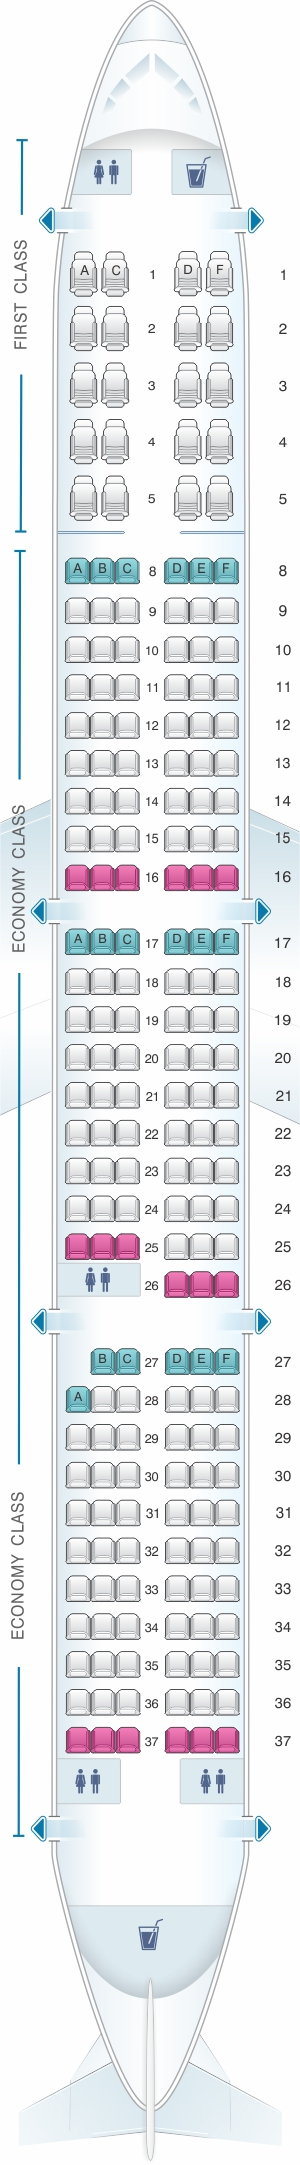 Seat map for American Airlines Airbus A320 neo